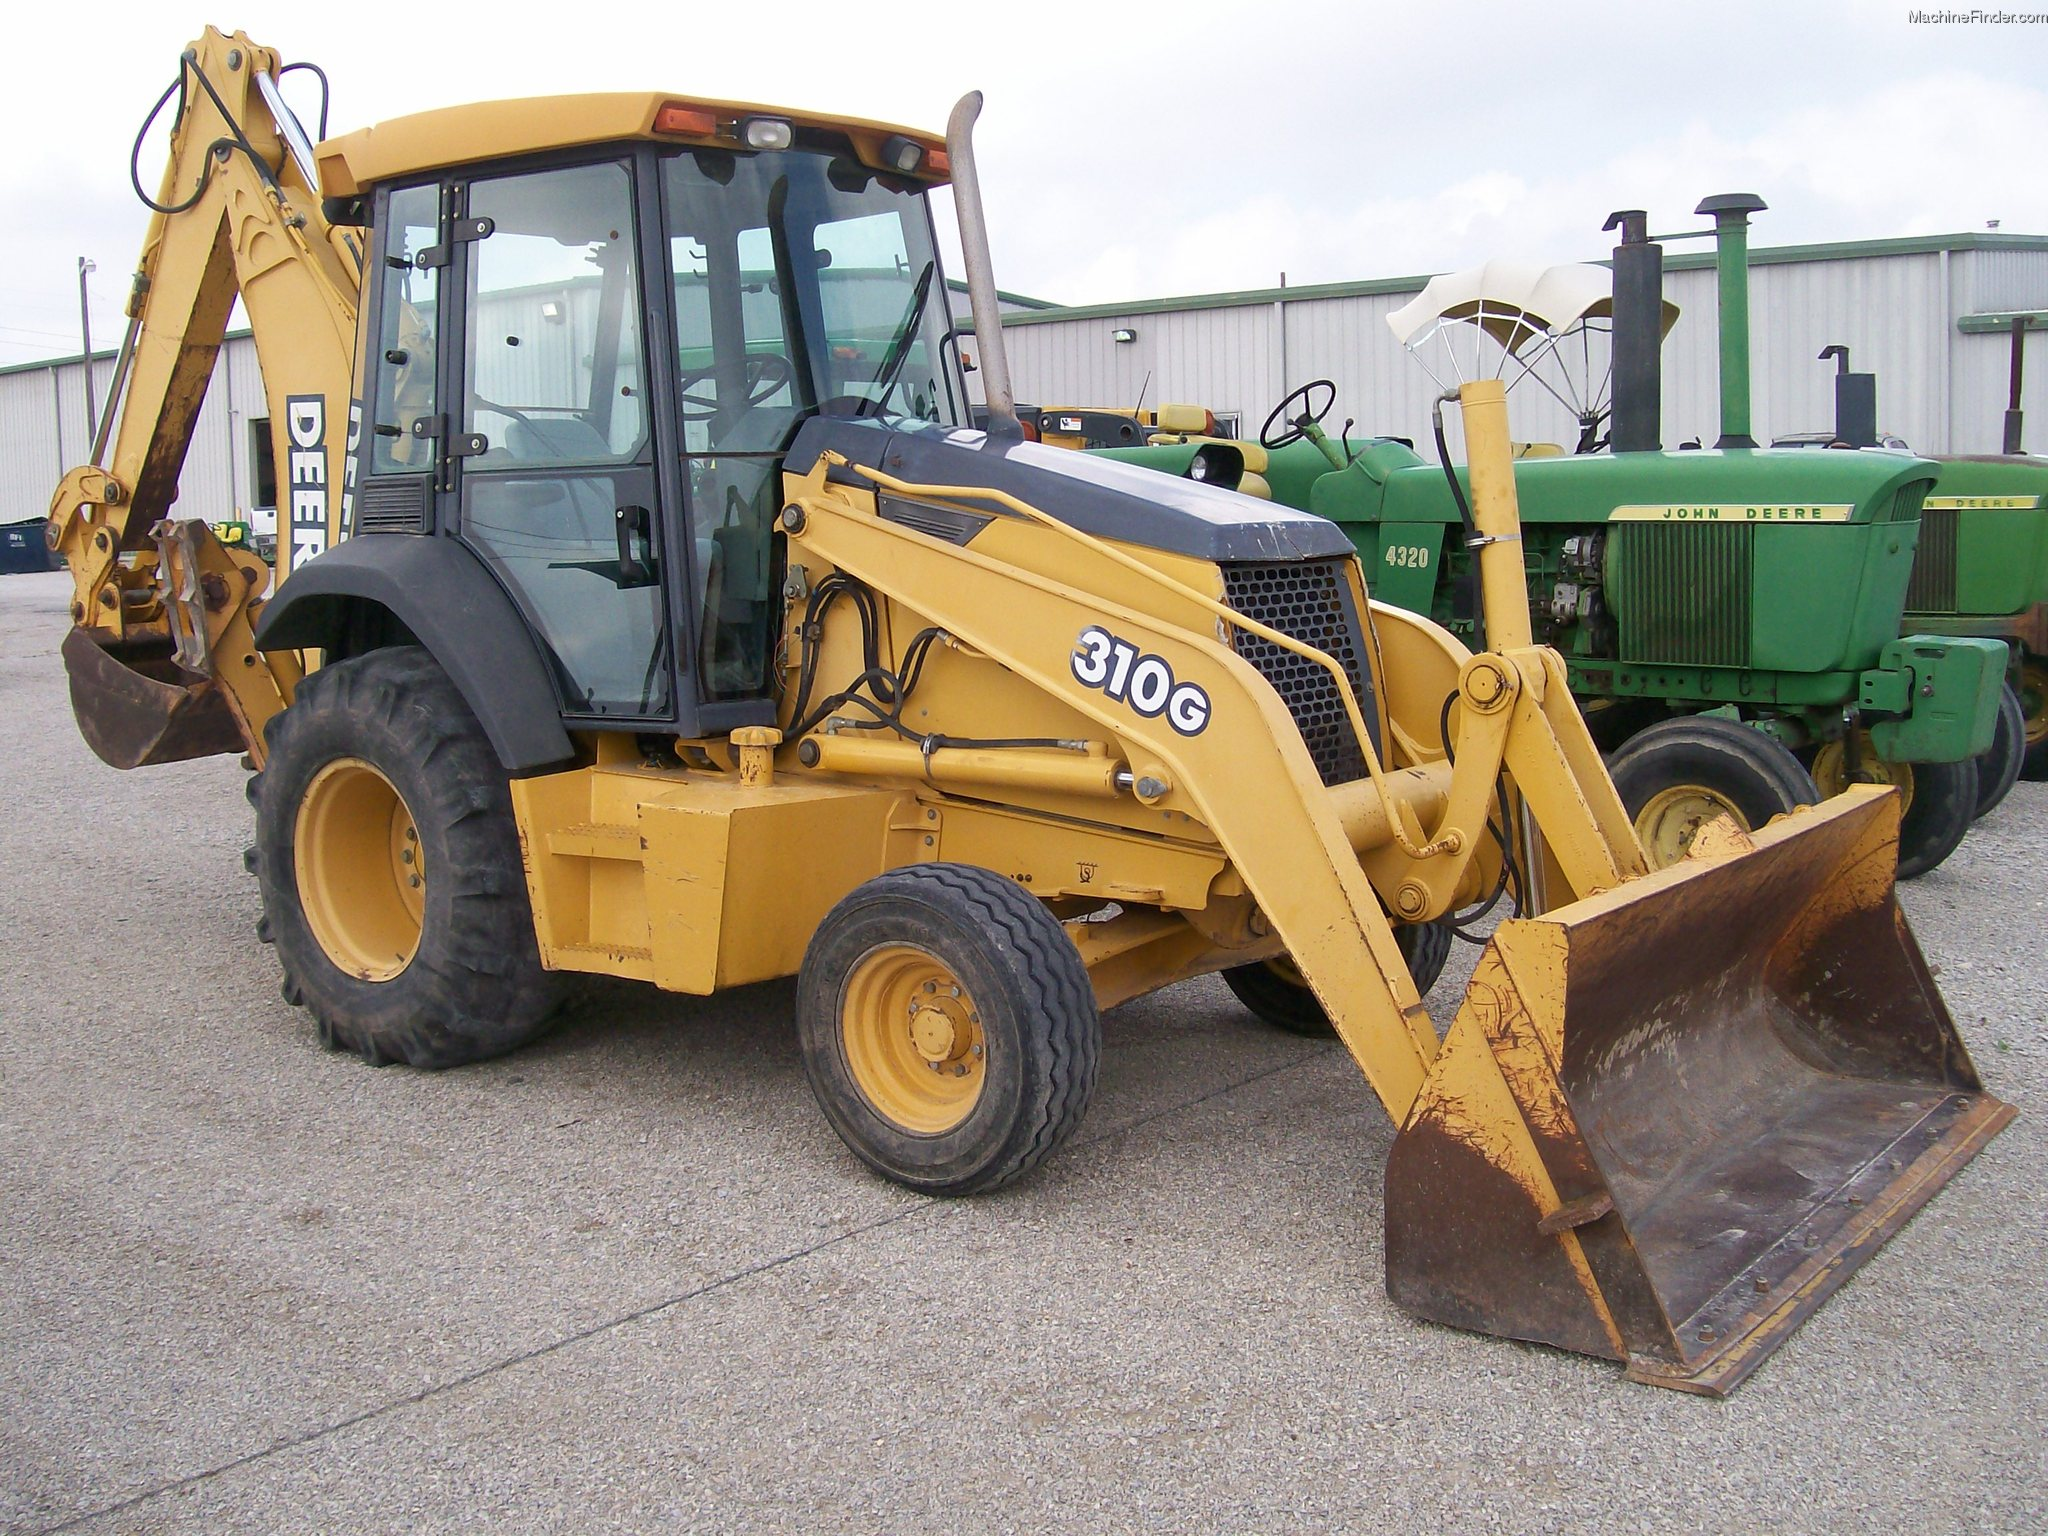 2003 John Deere 310G Backhoe Loaders - John Deere ...